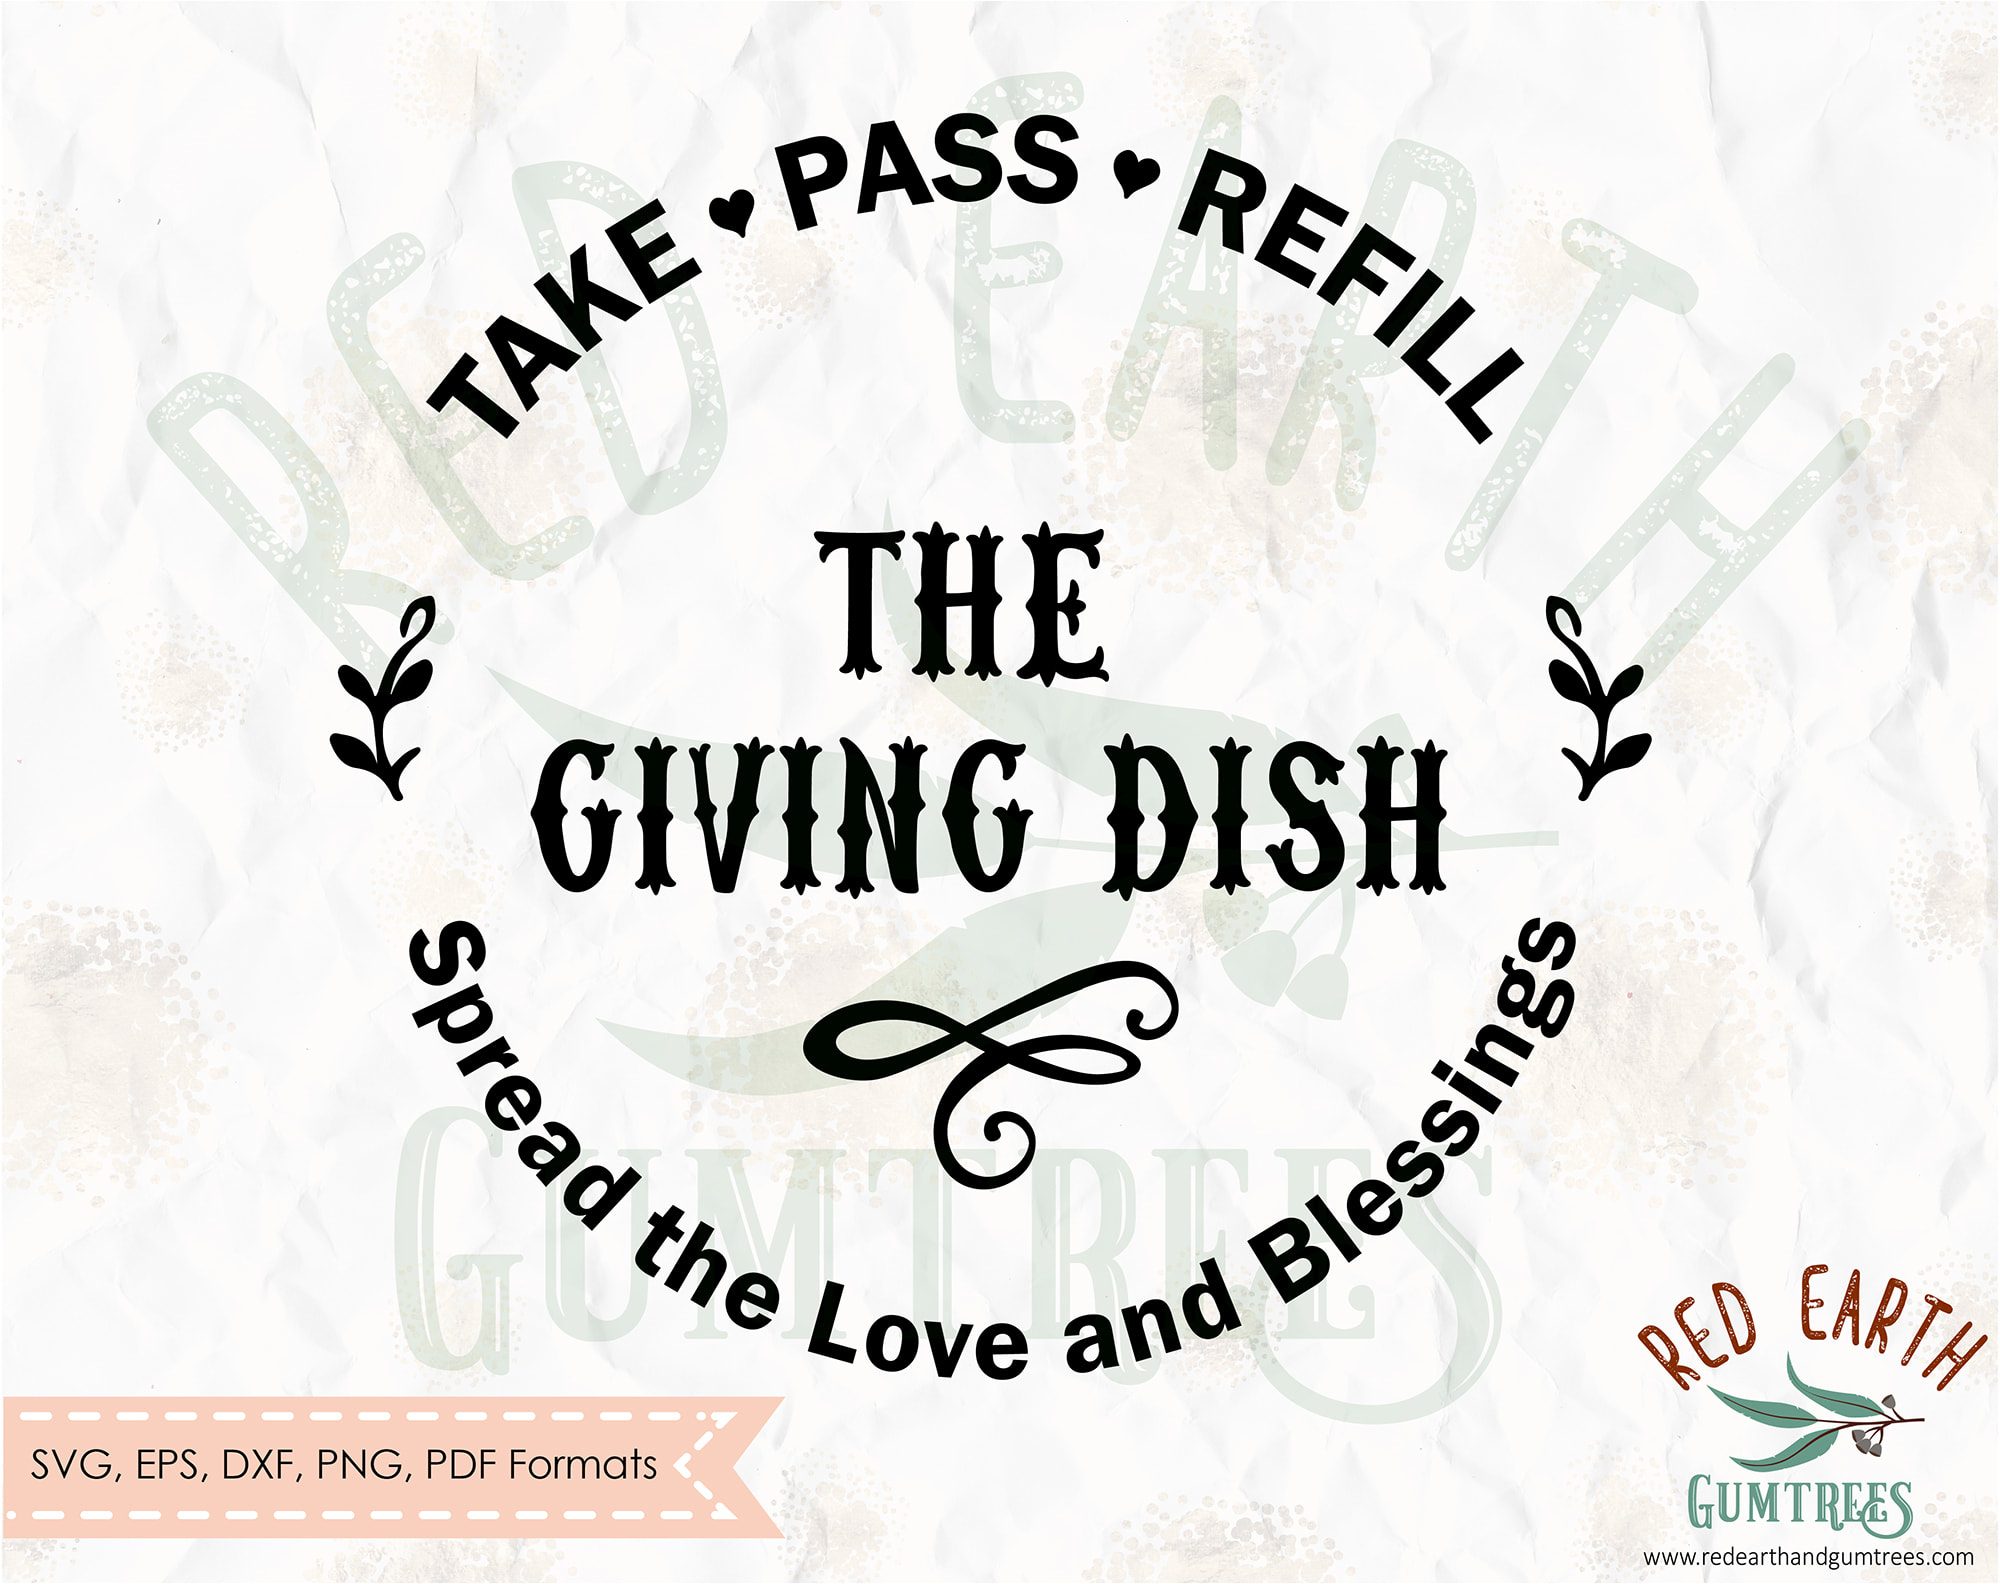 Sharing Plate Decal Giving Plate Svg Giving Plate Decal Christmas Plate Share Plate Decal Give Plate Decal Sharing Dish Svg Giving Dish Svg Cookie Dish Svg Christmas Dish Svg Santa Plate Svg